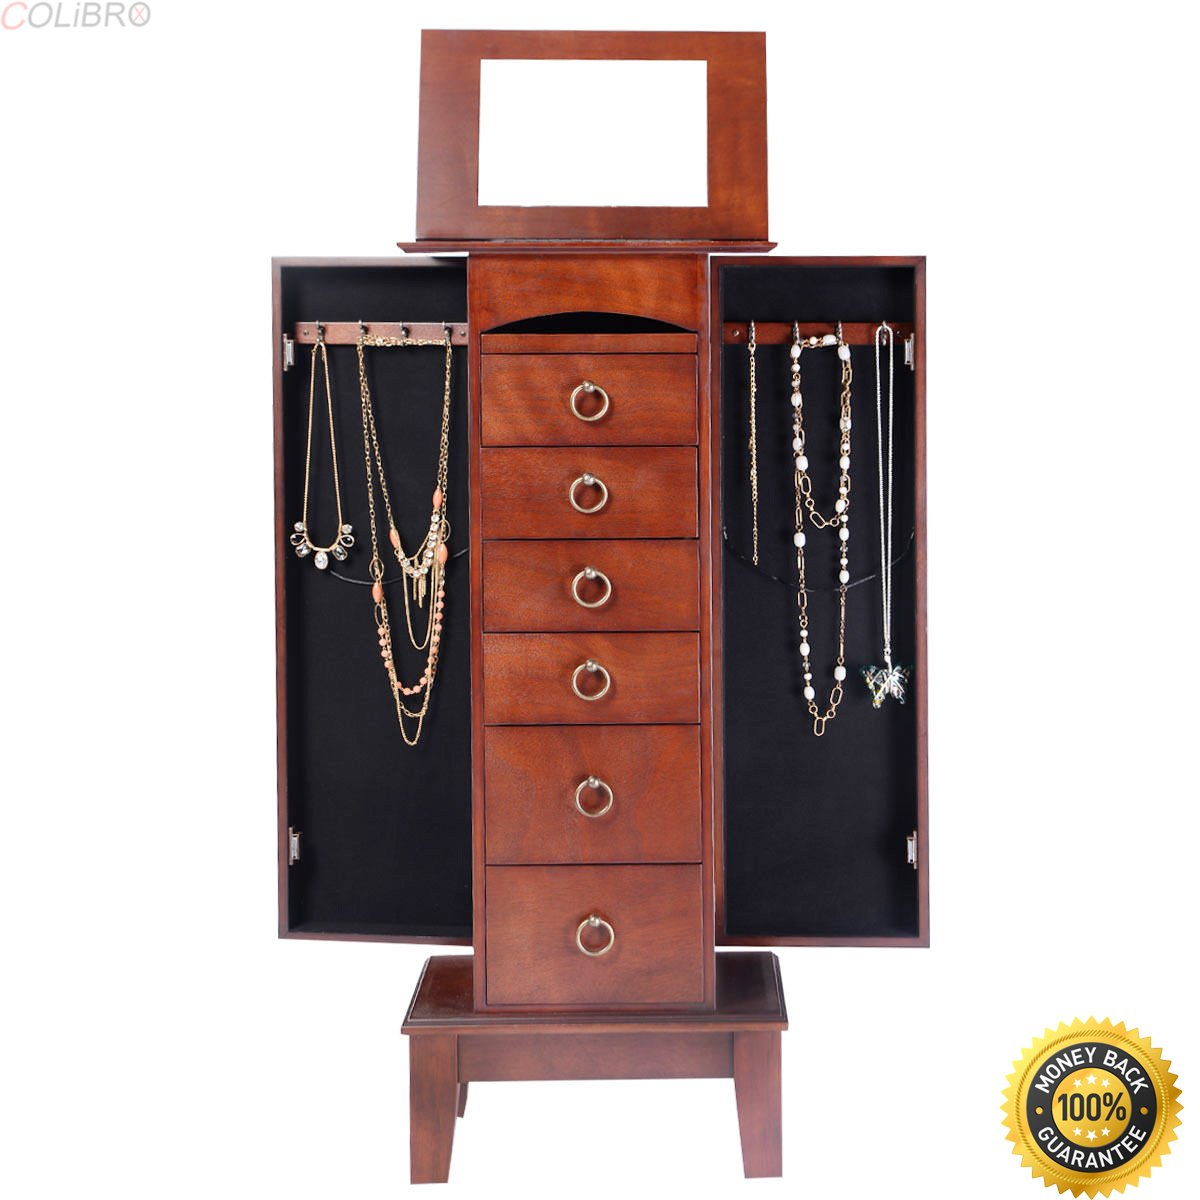 COLIBROX Wood Jewelry Cabinet Armoire Storage Box Chest Stand Organizer Christmas Gift,locking jewelry armoire,locking jewelry armoire floor standing,jewelry box for necklaces,jewelry gift box